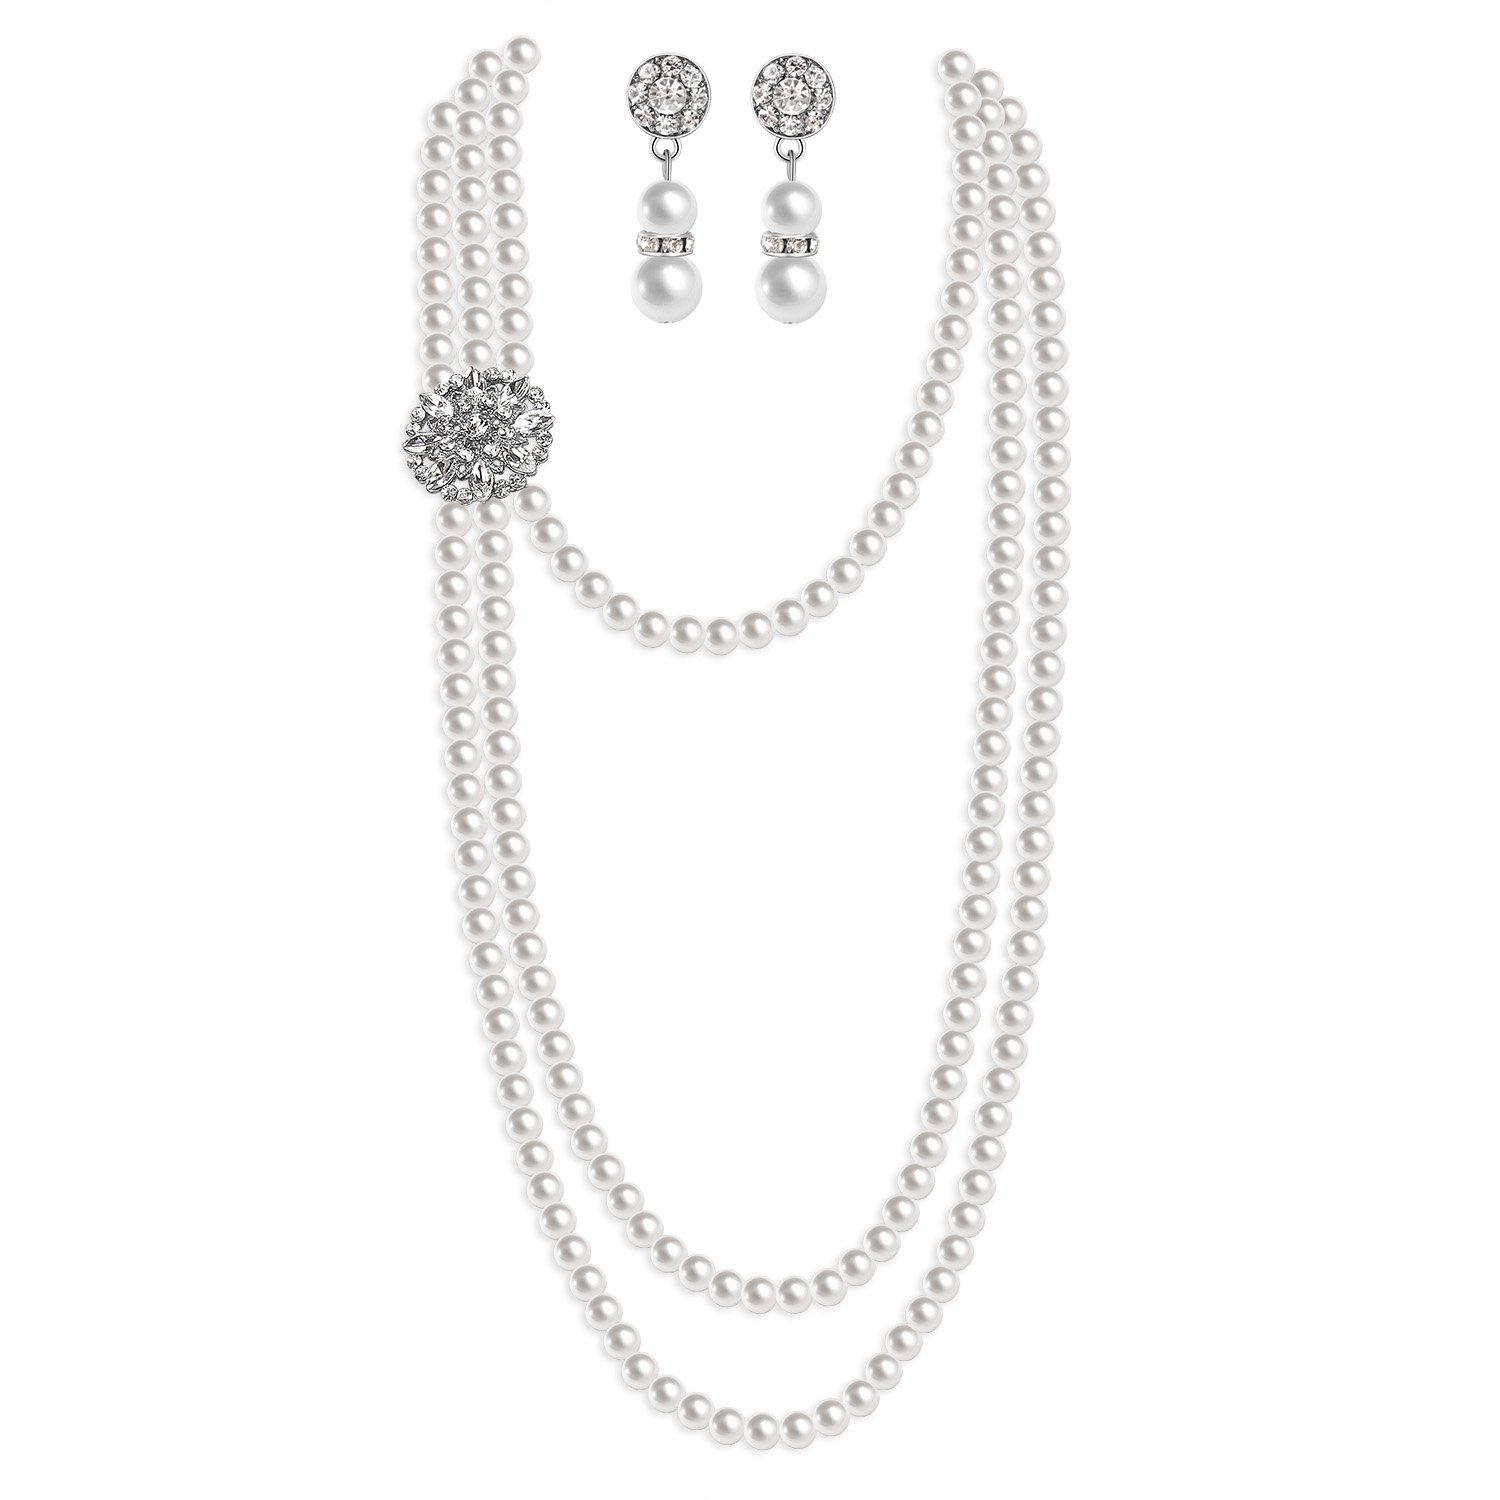 Zivyes 1920s Gatsby Multilayer Imitation Pearl Choker Necklace Earrings Jewelry Set Flapper Accessories (A-White)